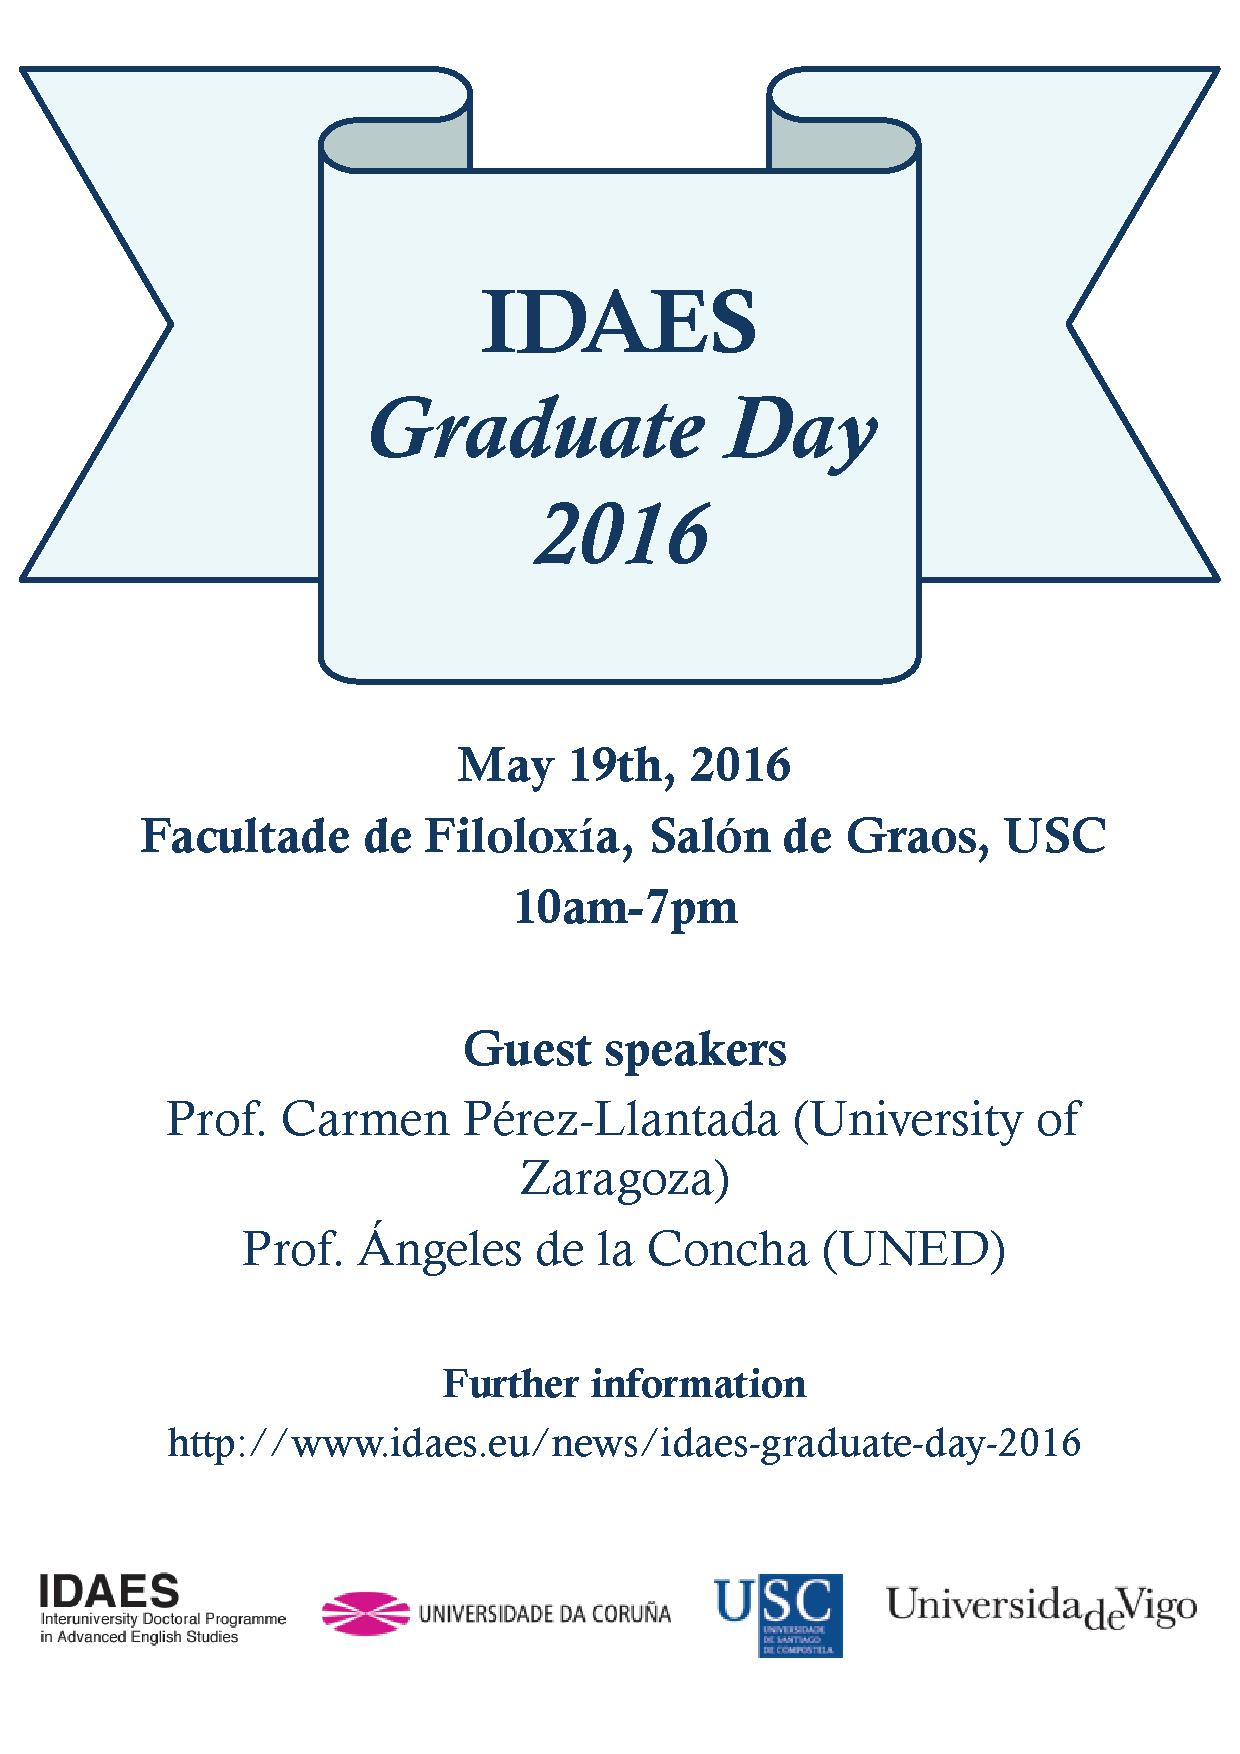 idaes_graduate_day_2016_poster